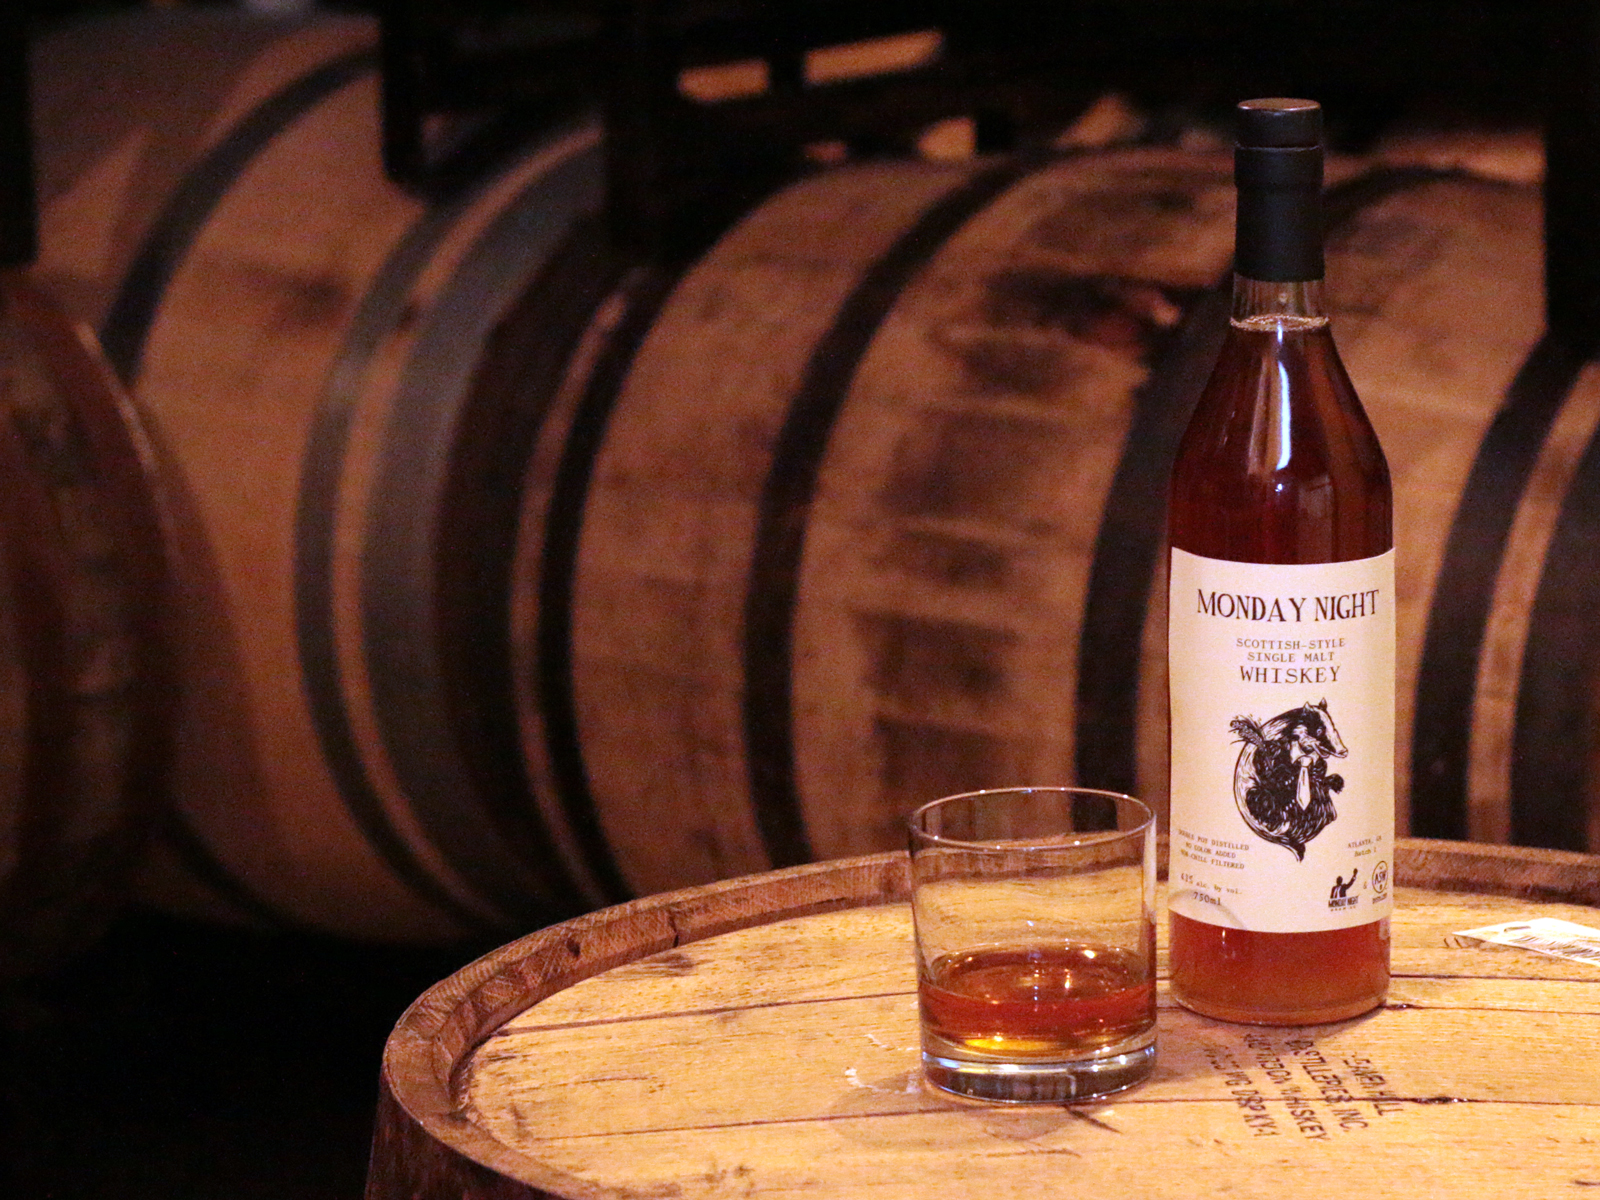 Big news: We partnered up with ASW Distillery to make a whiskey